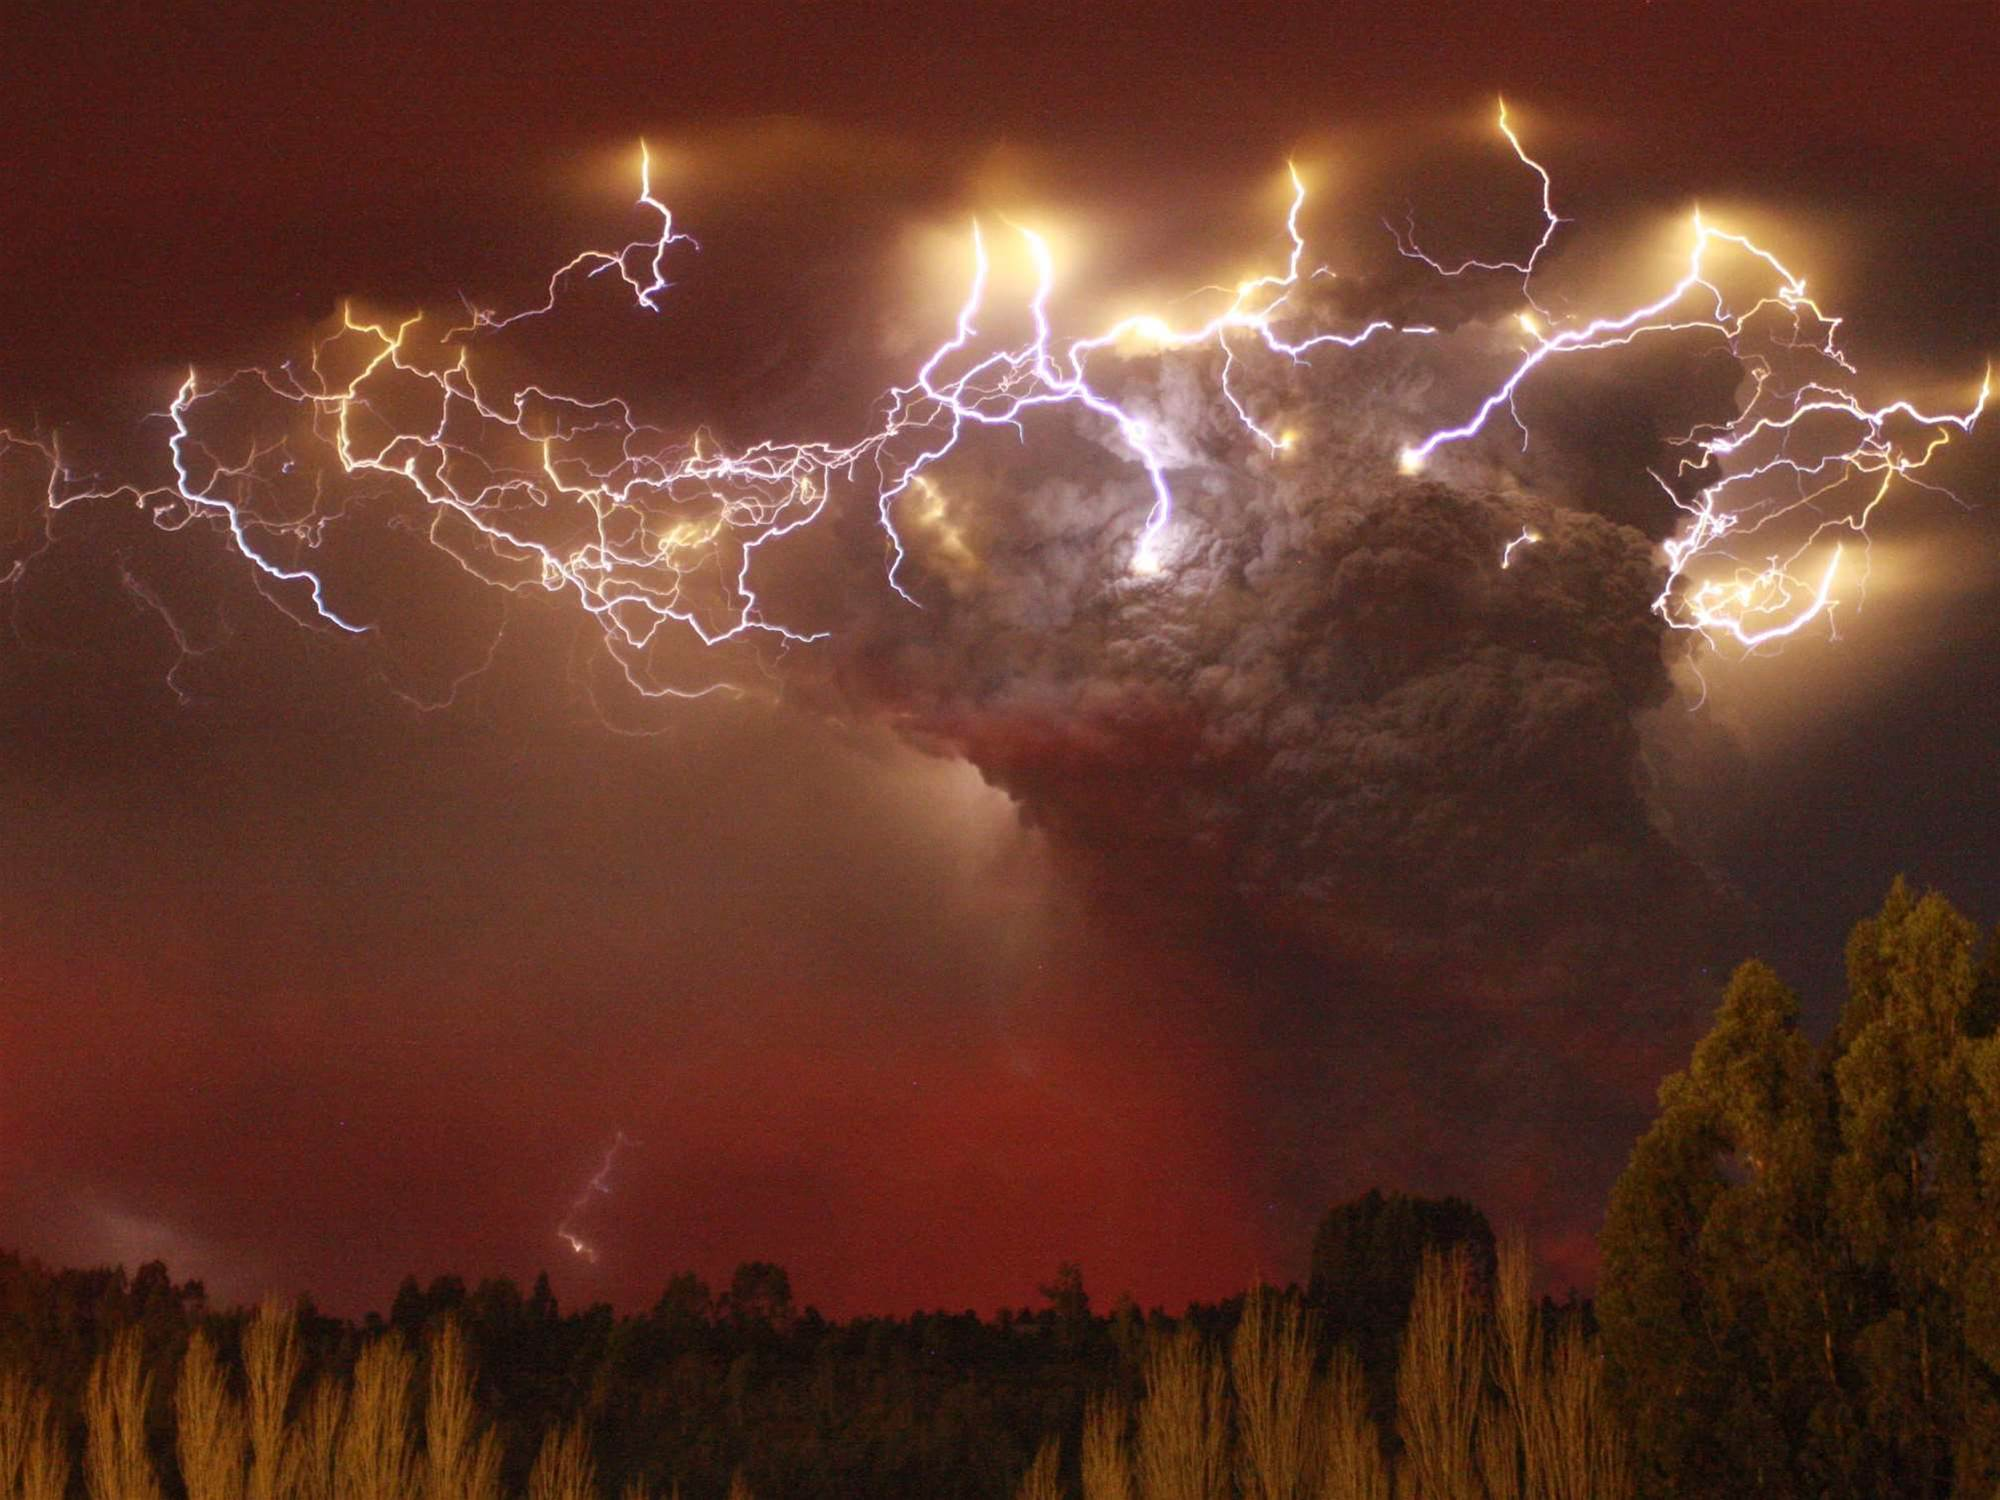 Where Does Volcano Lightning Come From?